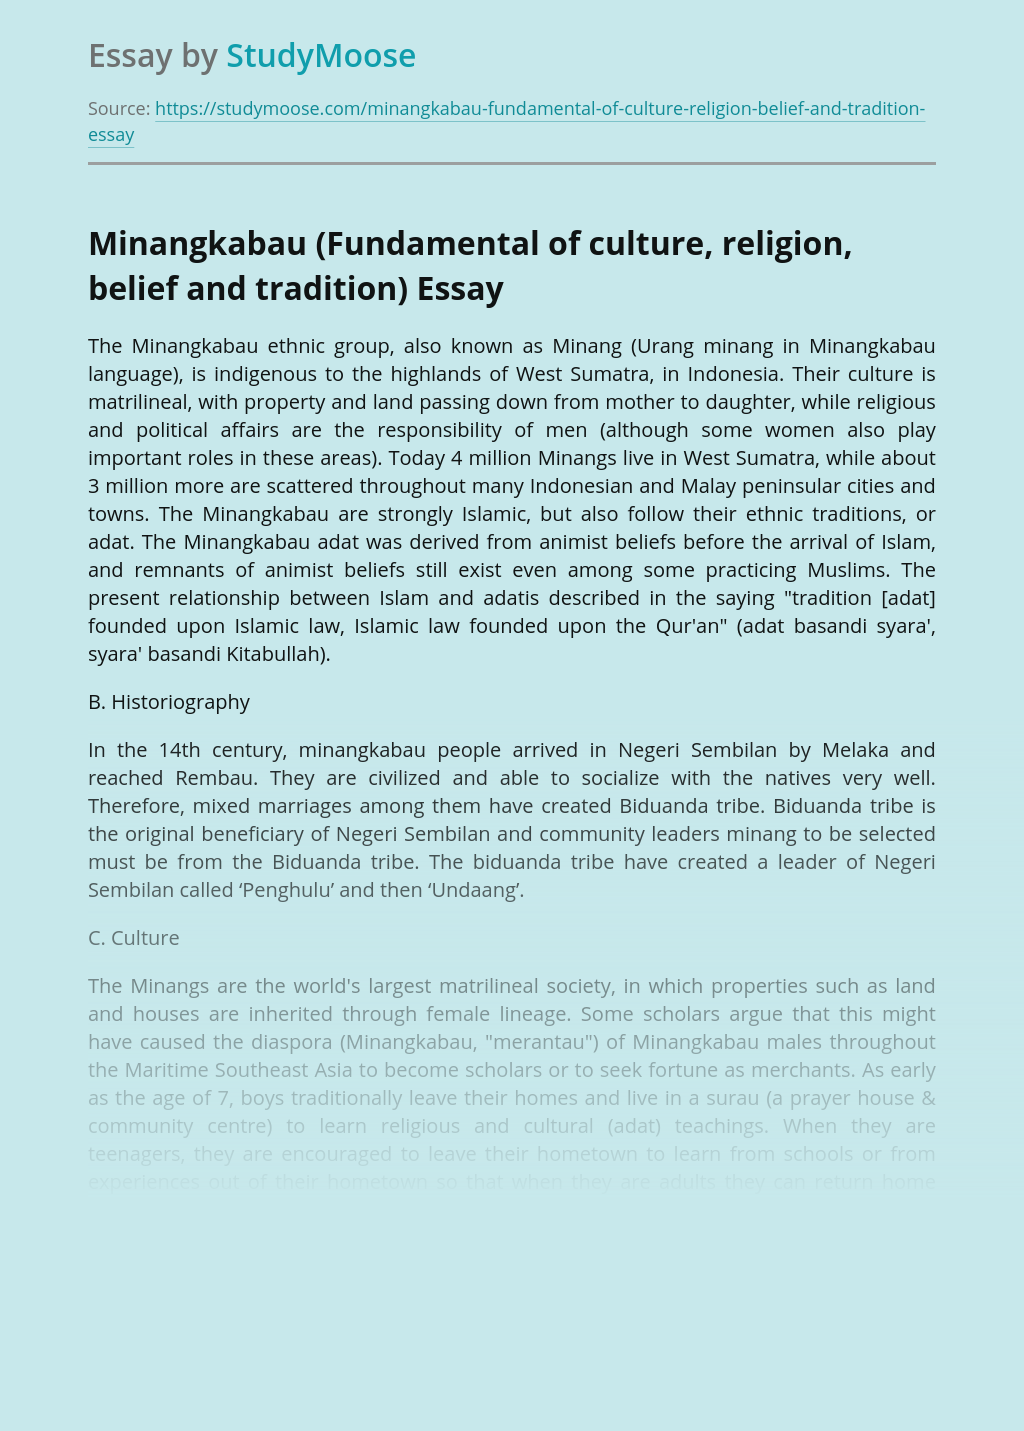 Minangkabau (Fundamental of culture, religion, belief and tradition)